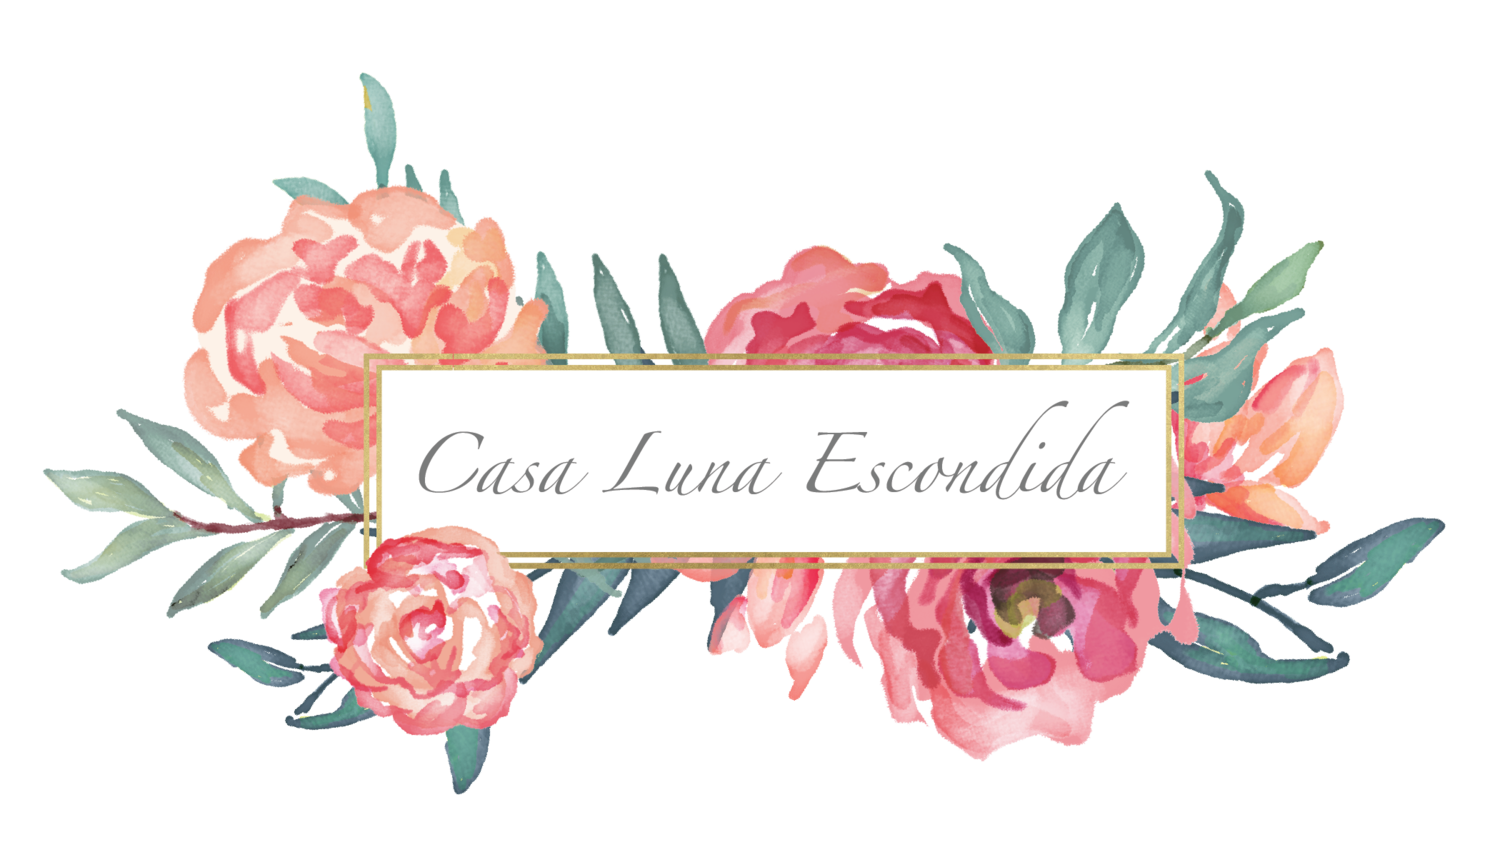 Casa Luna Escondida